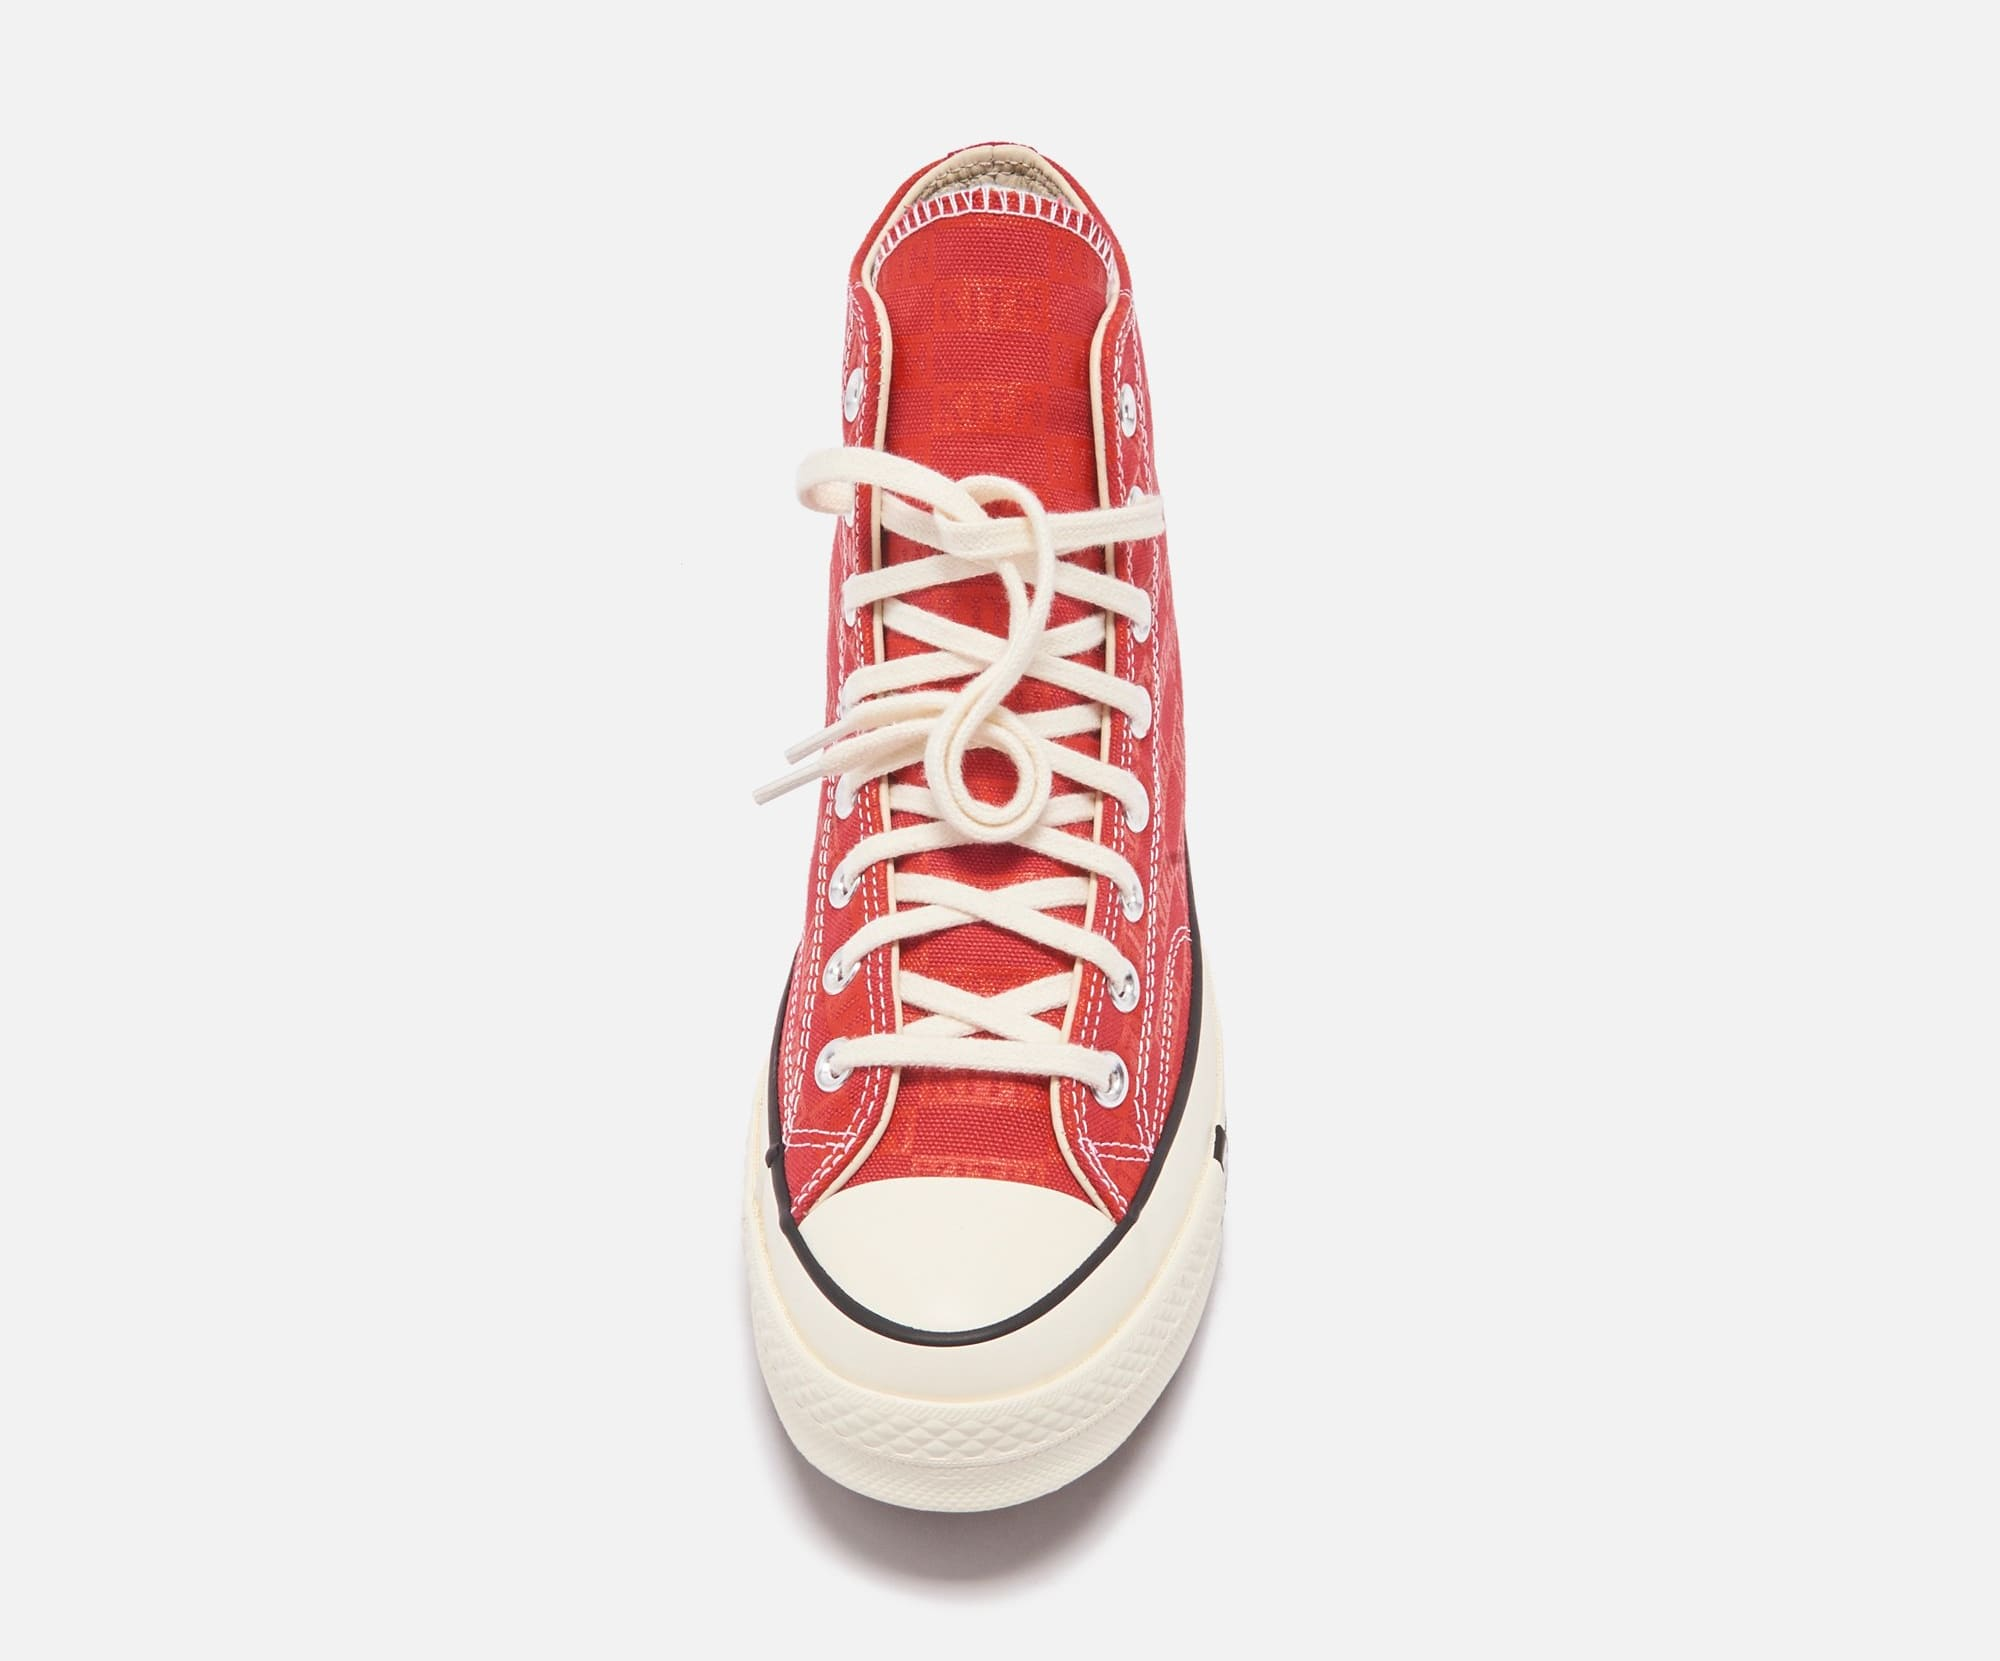 Kith x Converse Chuck 70 'Red' (Front)